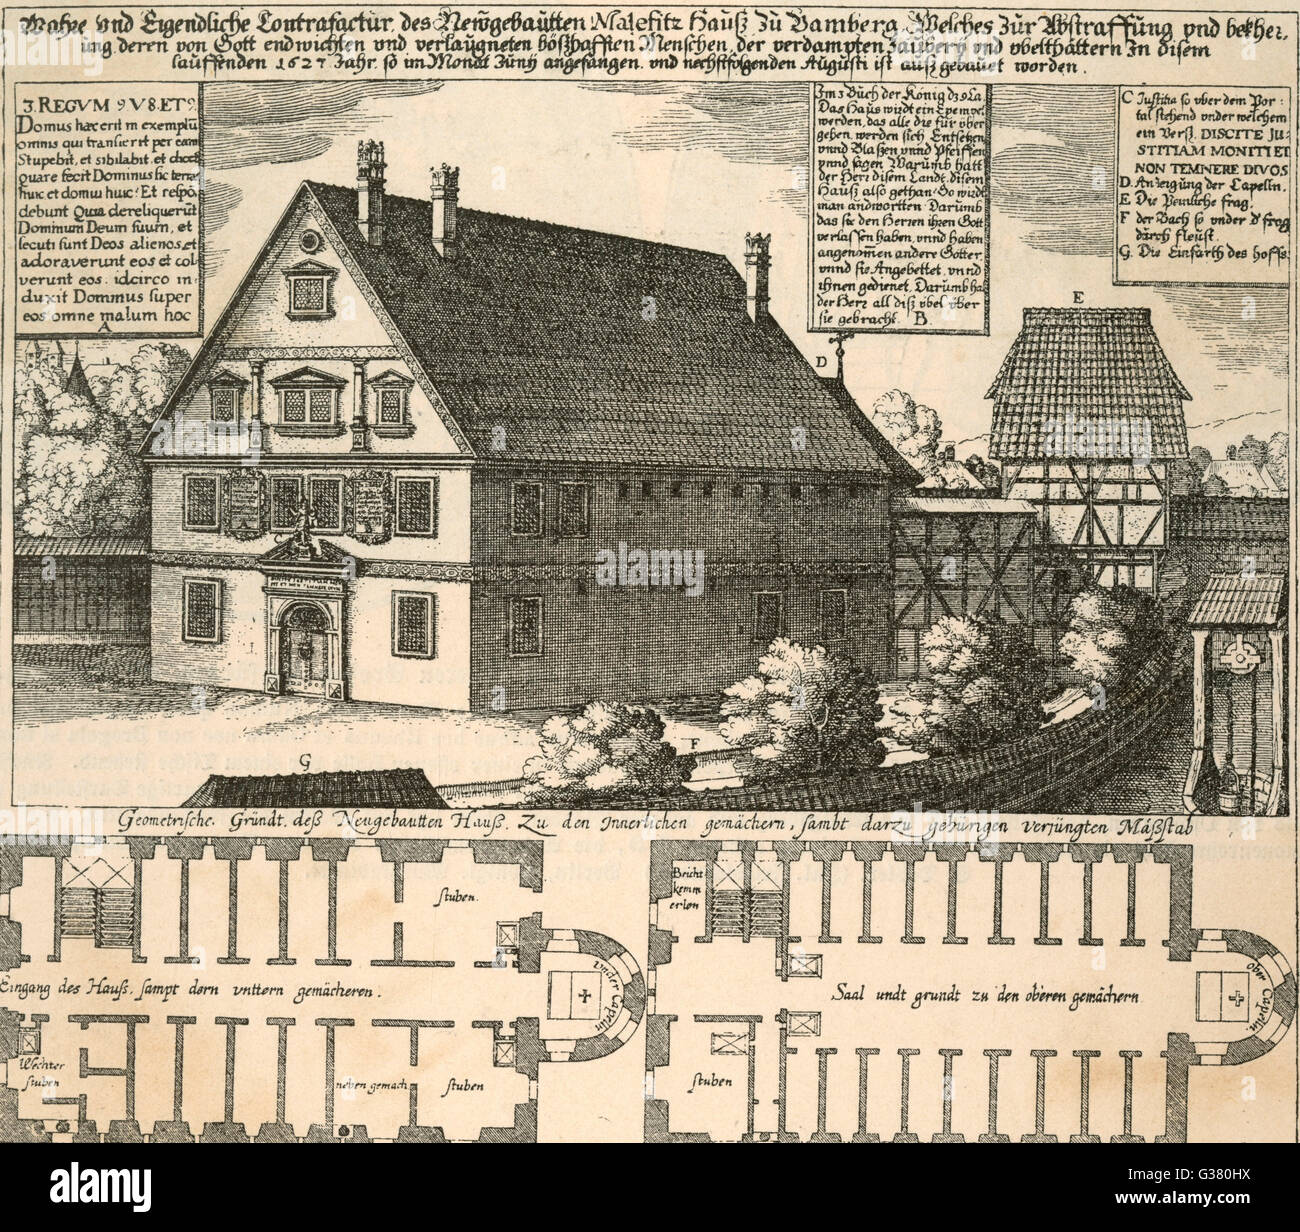 The 'Malefitz Haus'  constructed at Bamberg,  Germany, specifically for the  questioning (i.e. torture) - Stock Image